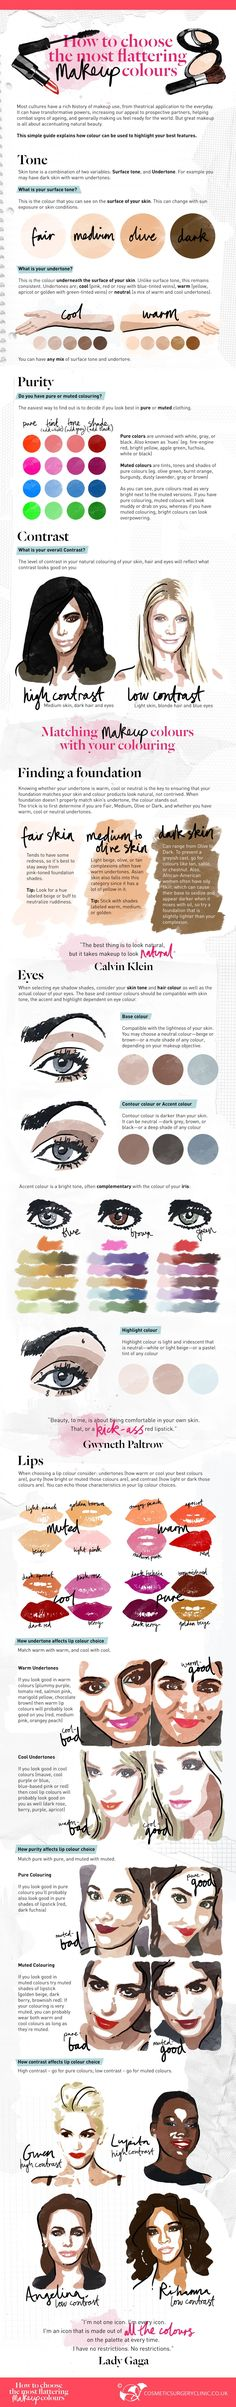 How to Choose the Most Flattering Makeup Colors for Your Skin Tone…